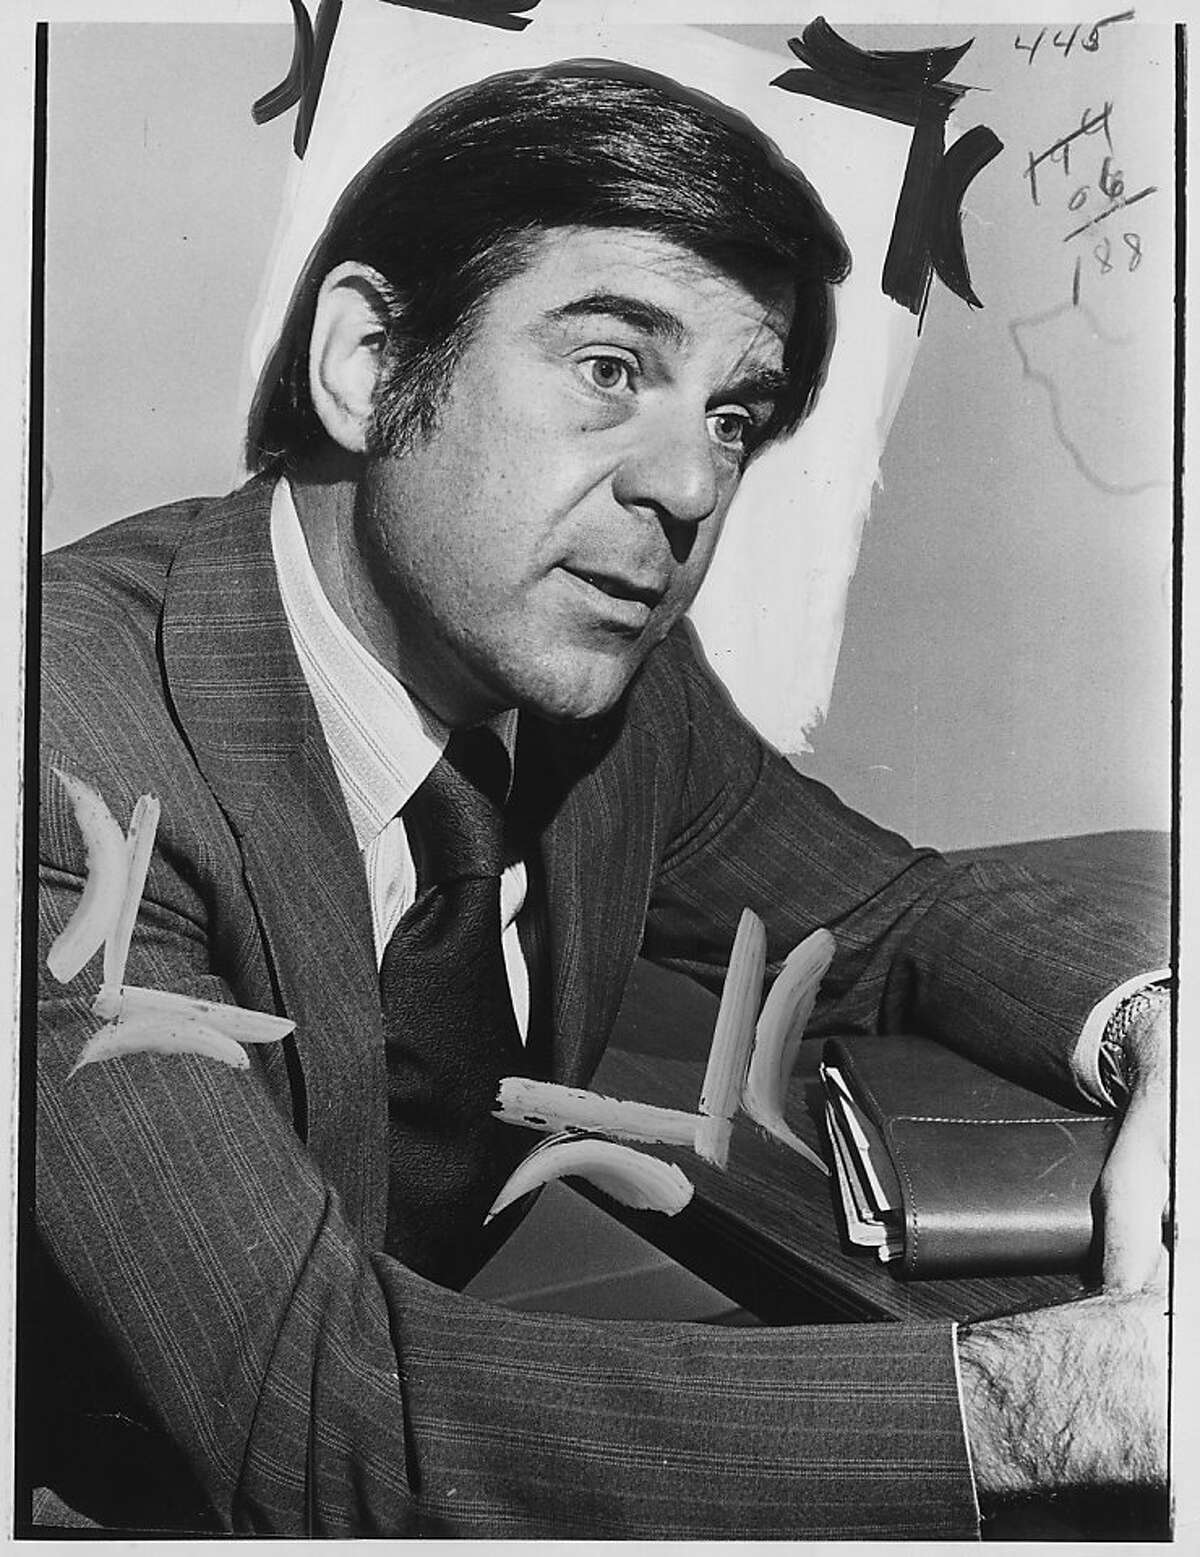 Pete Stark in 1972, running for Congress against Rep. George P. Miller.